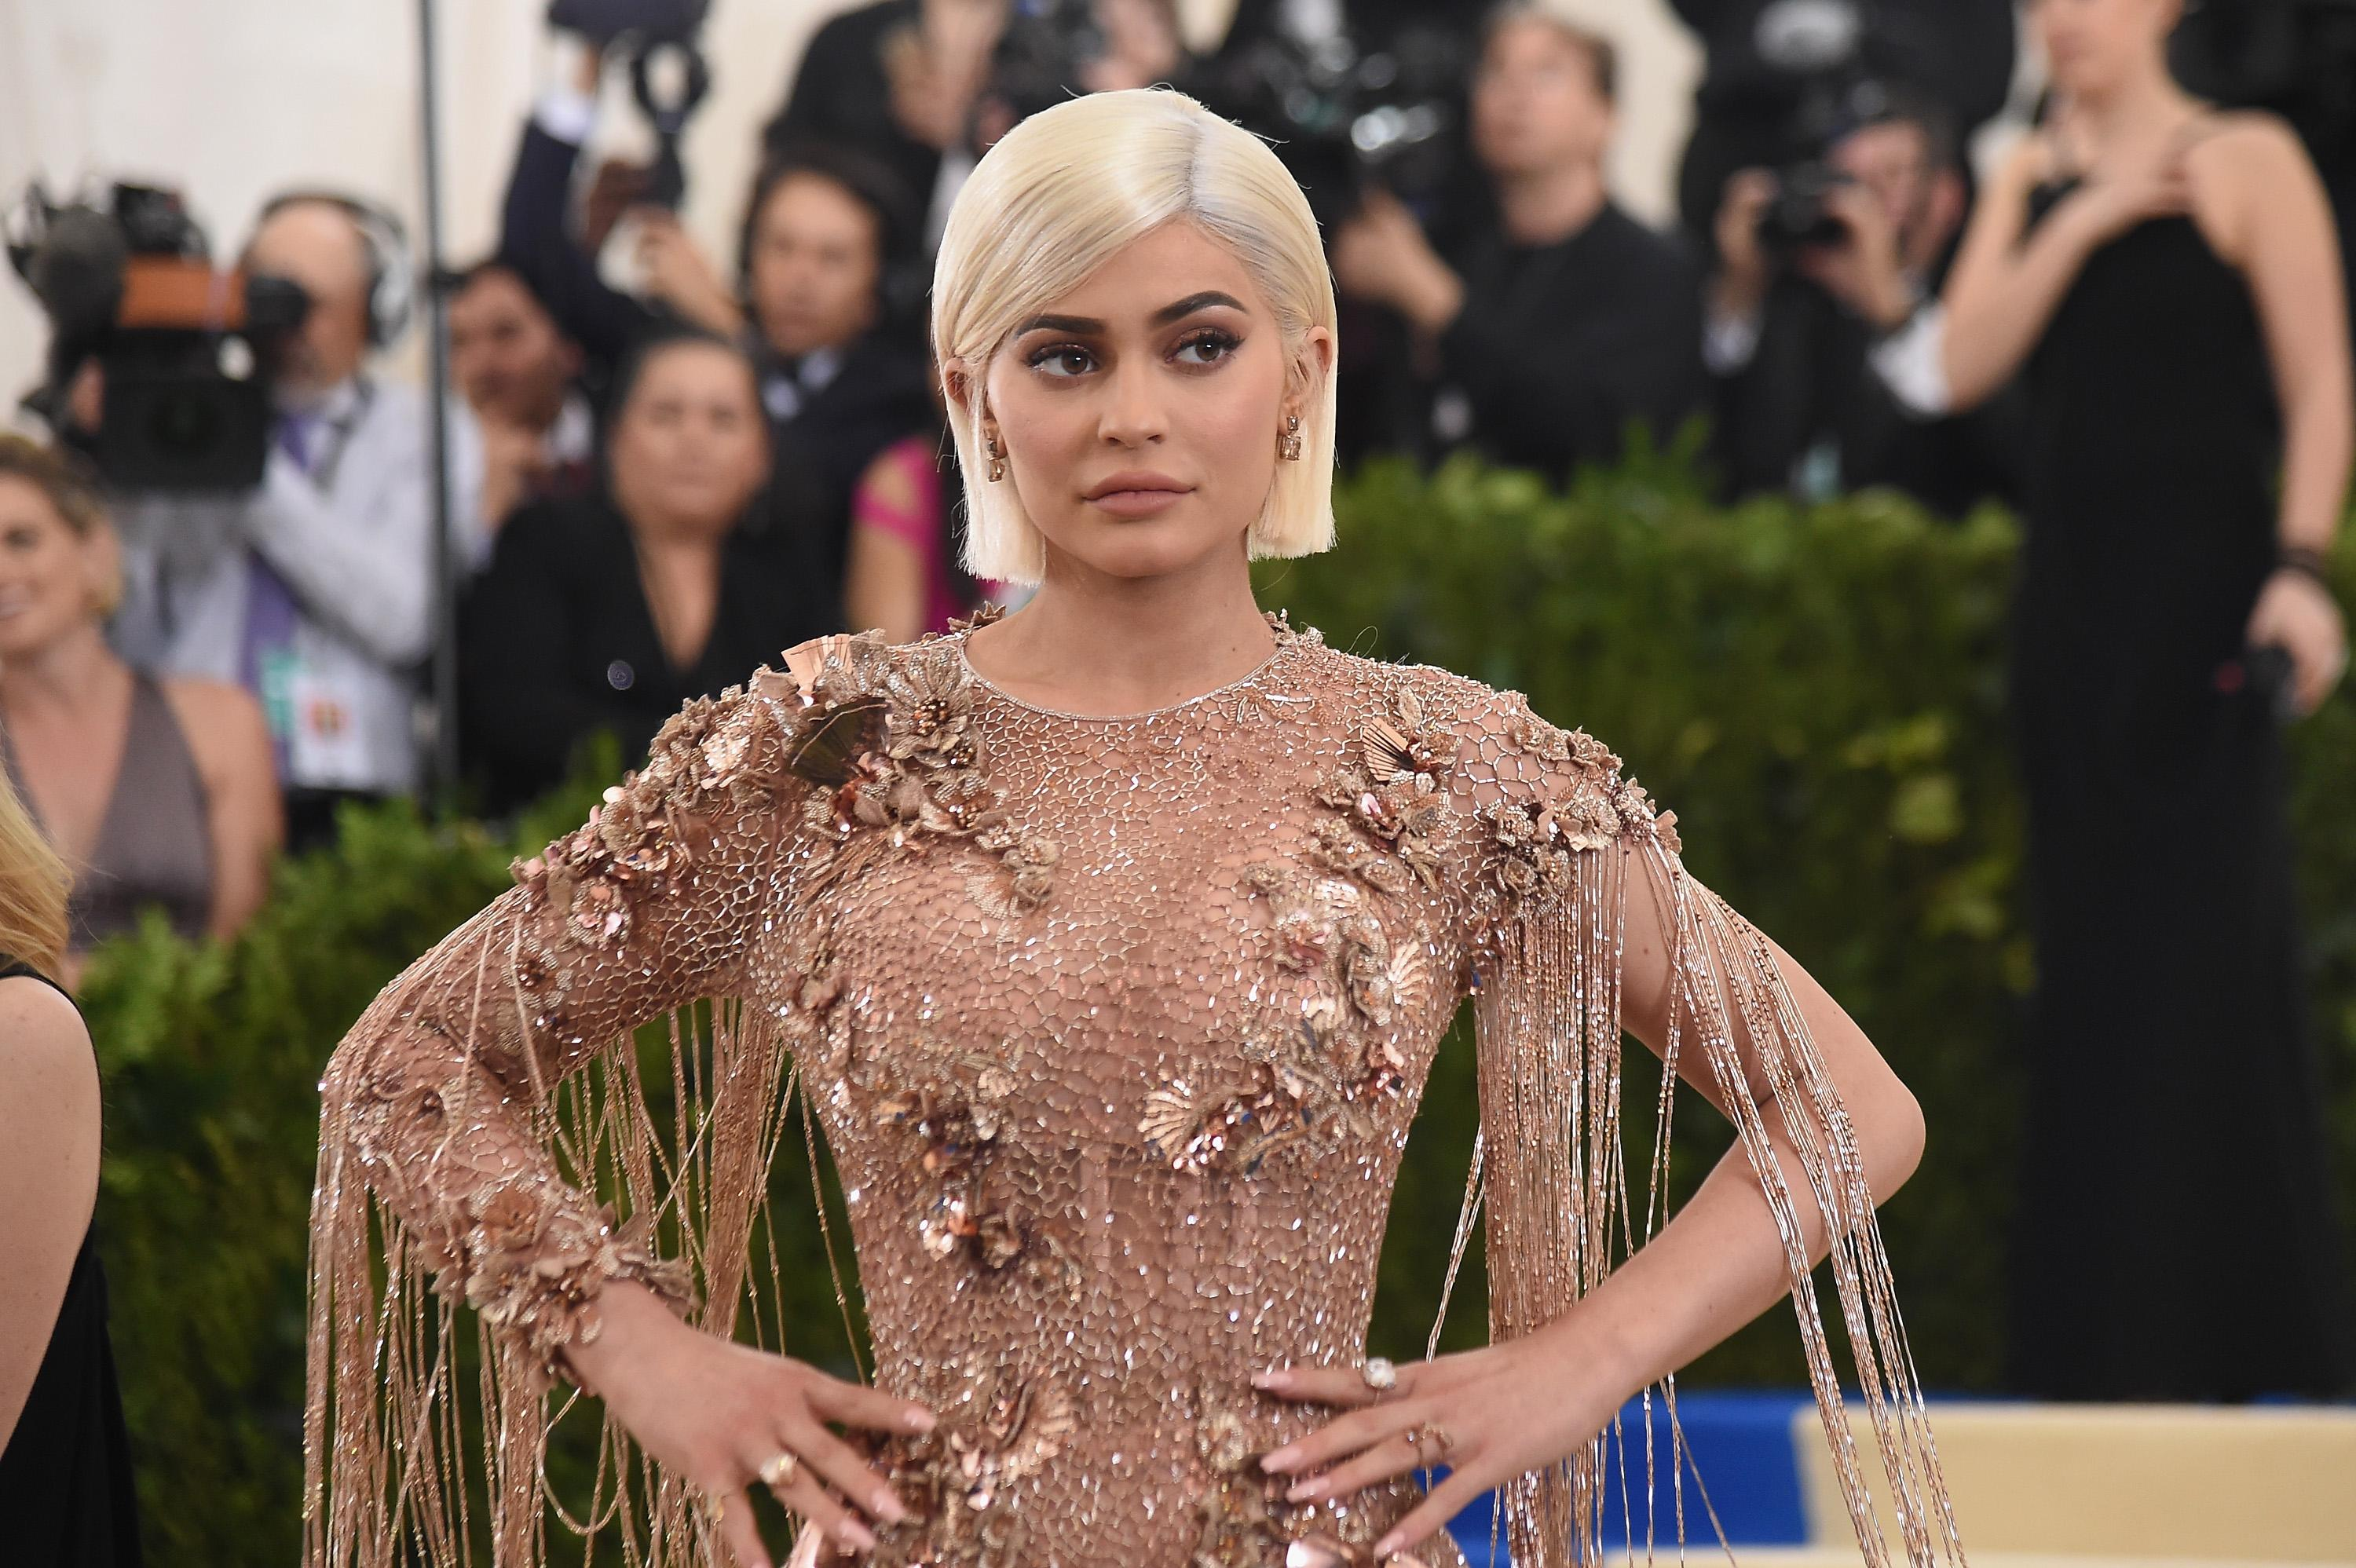 Pregnant Kylie Jenner 'Is Loving the Time Off' Before Her Baby Arrives